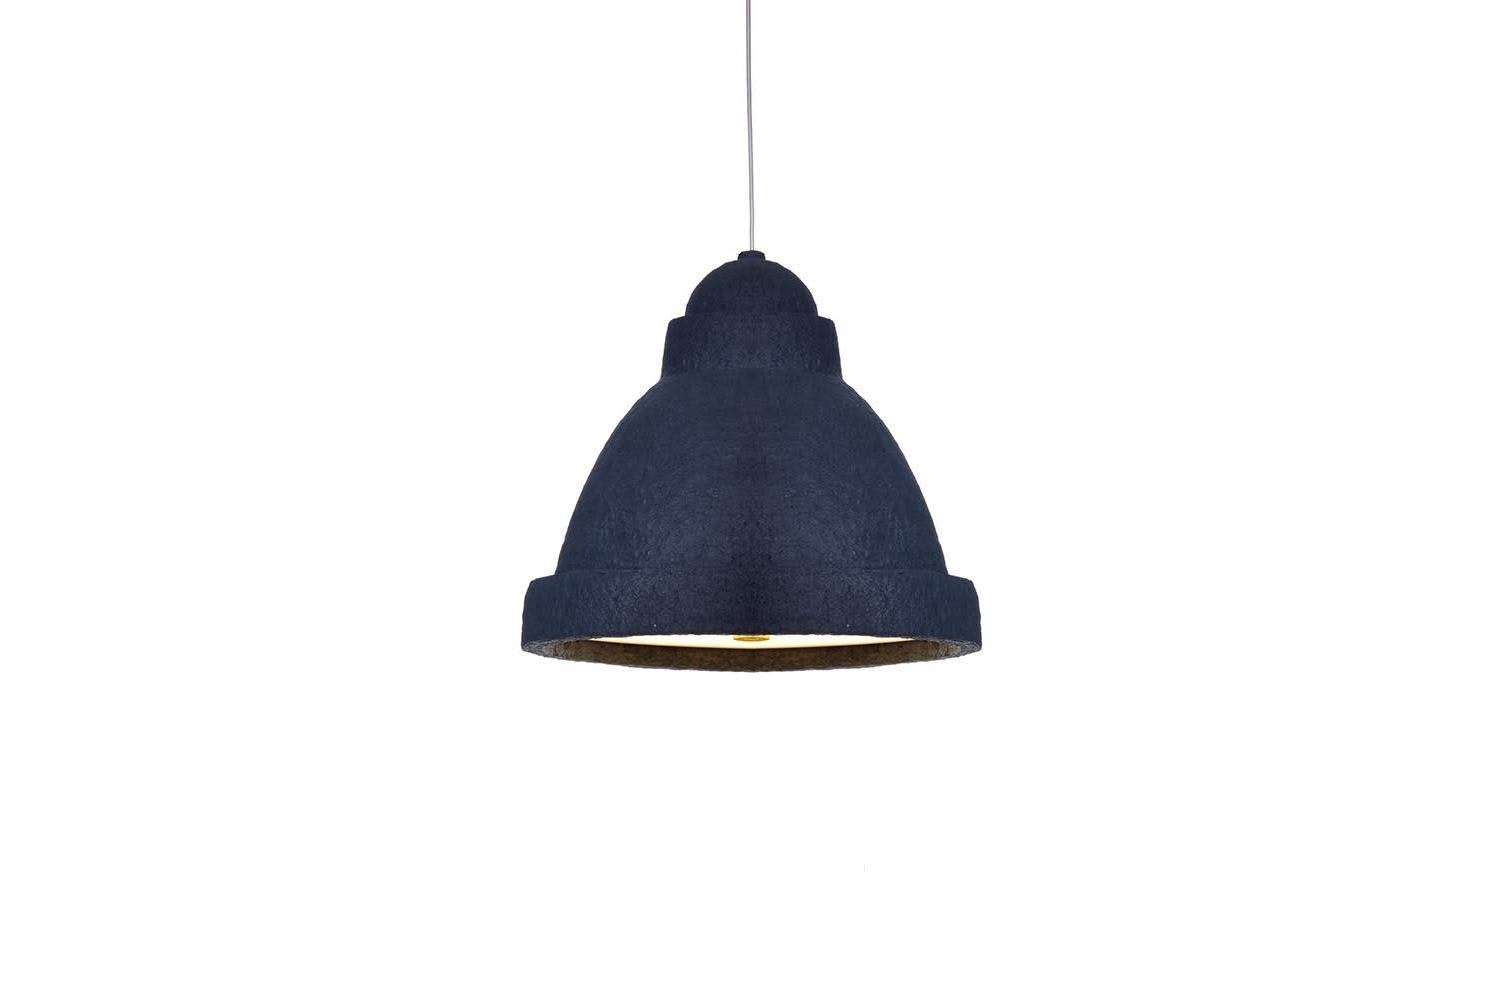 Salago Medium Suspension Lamp by Danny Fang for Moooi